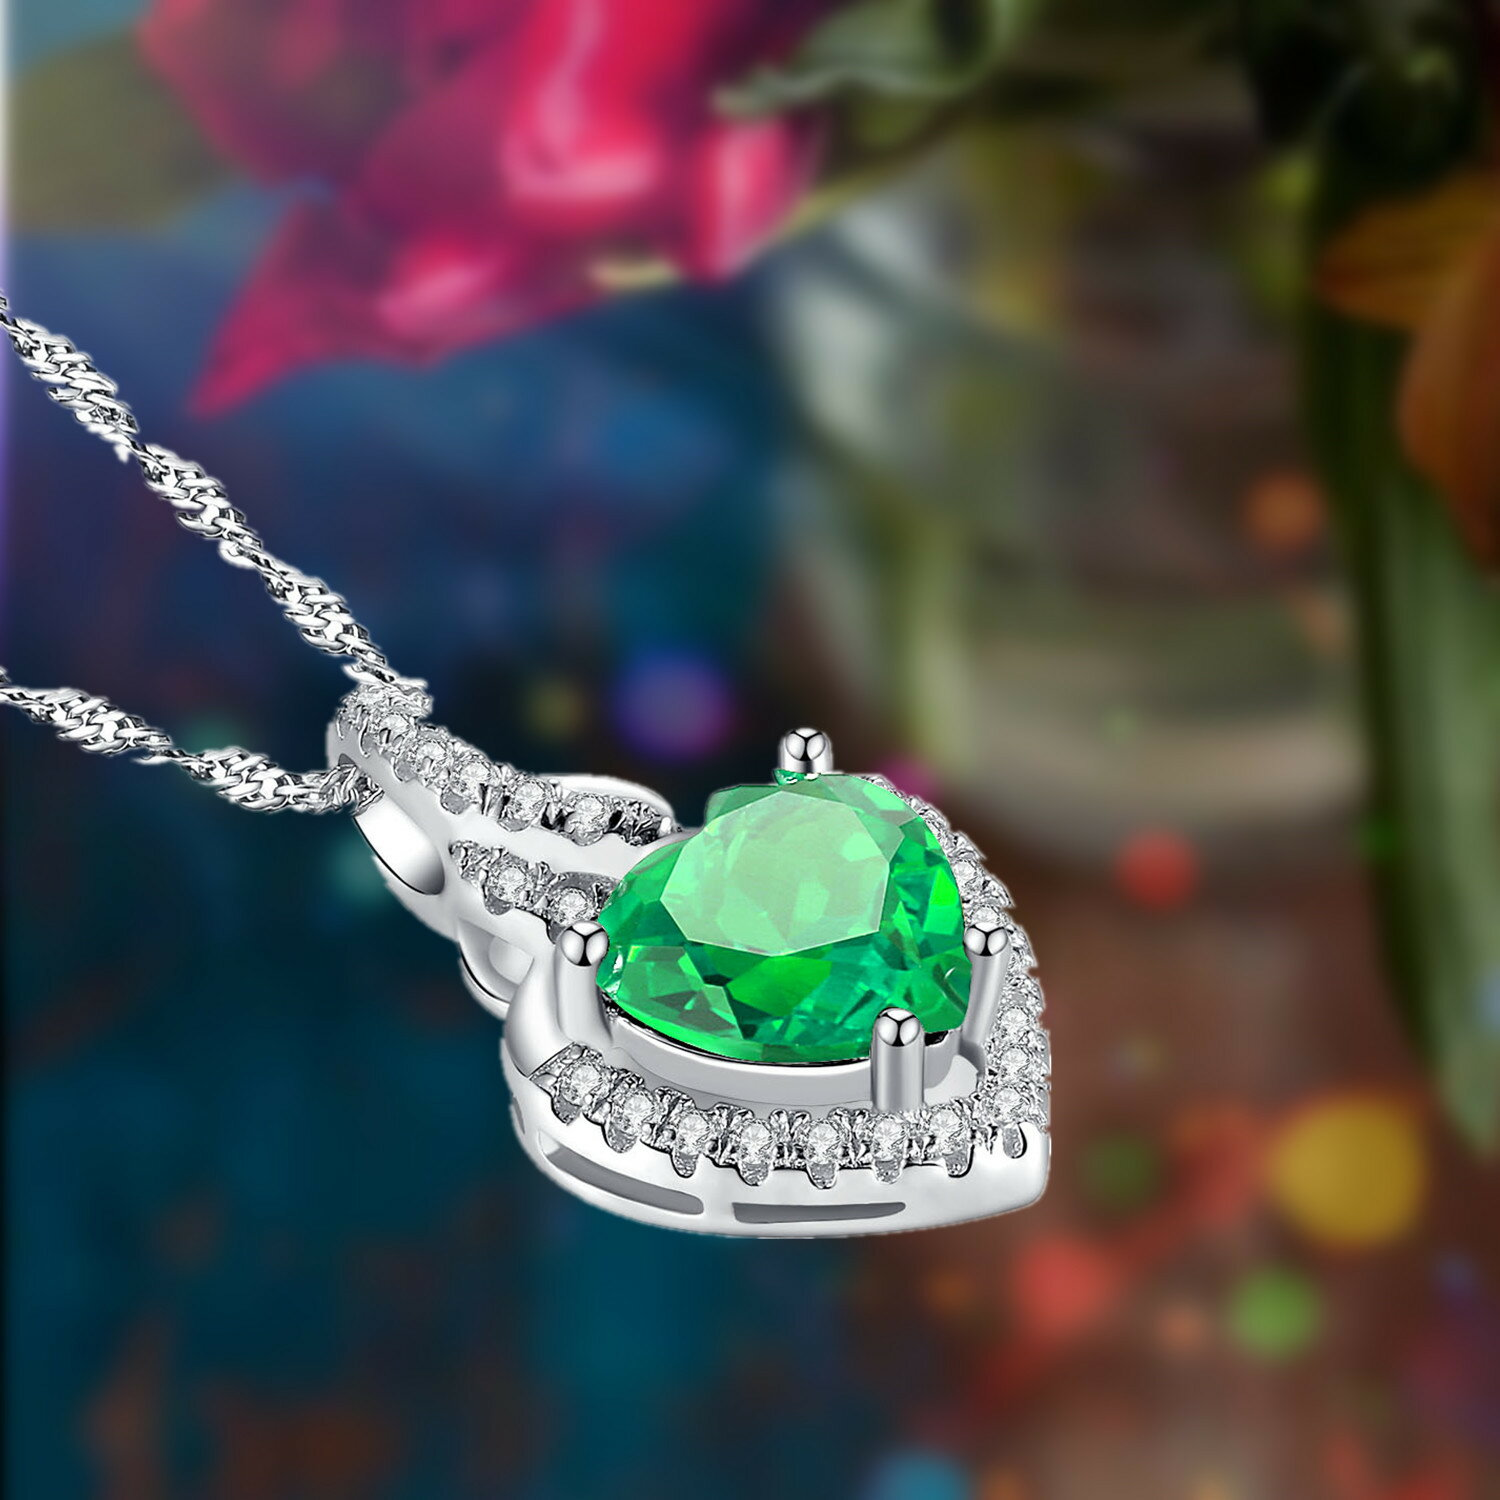 Mabellajewelry mabella sterling silver simulated emerald heart mabella sterling silver simulated emerald heart pendant necklace gifts for women18 3 aloadofball Gallery